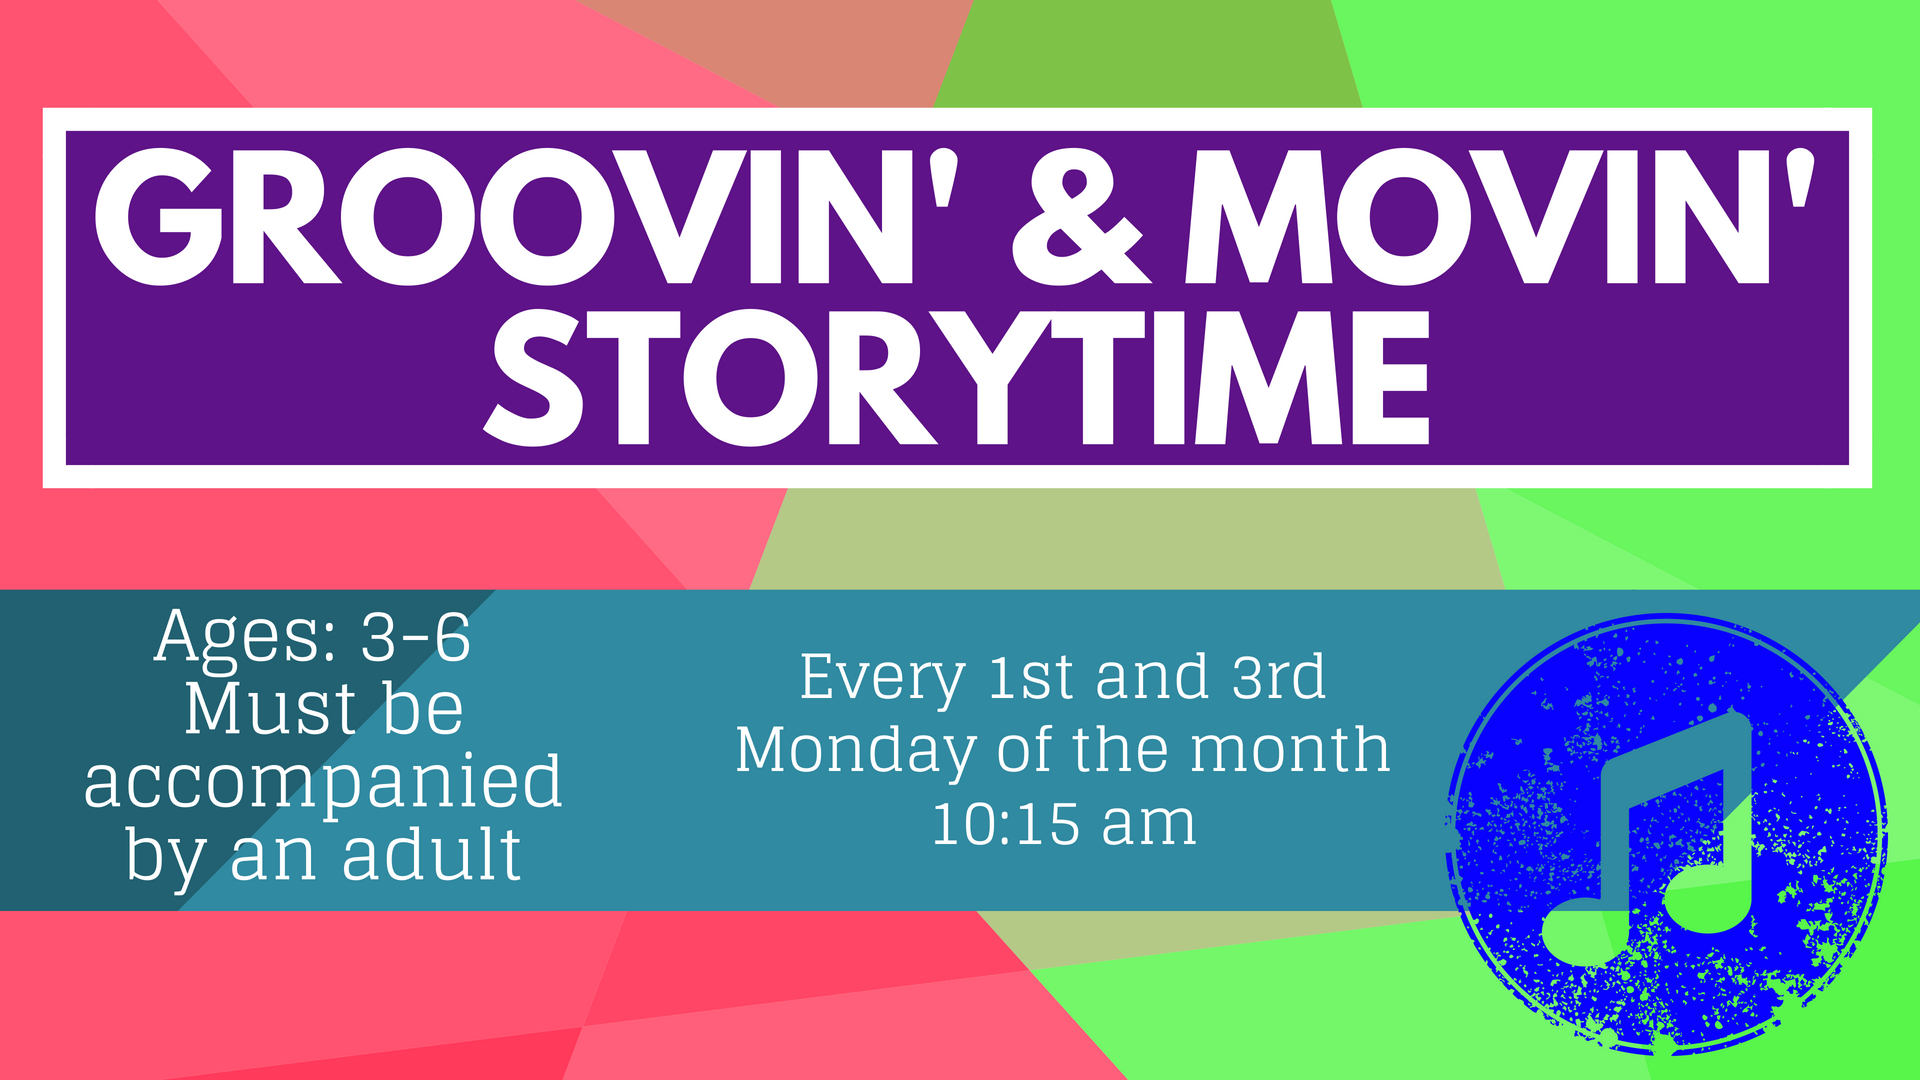 Groovin' and Moovin' Storytime